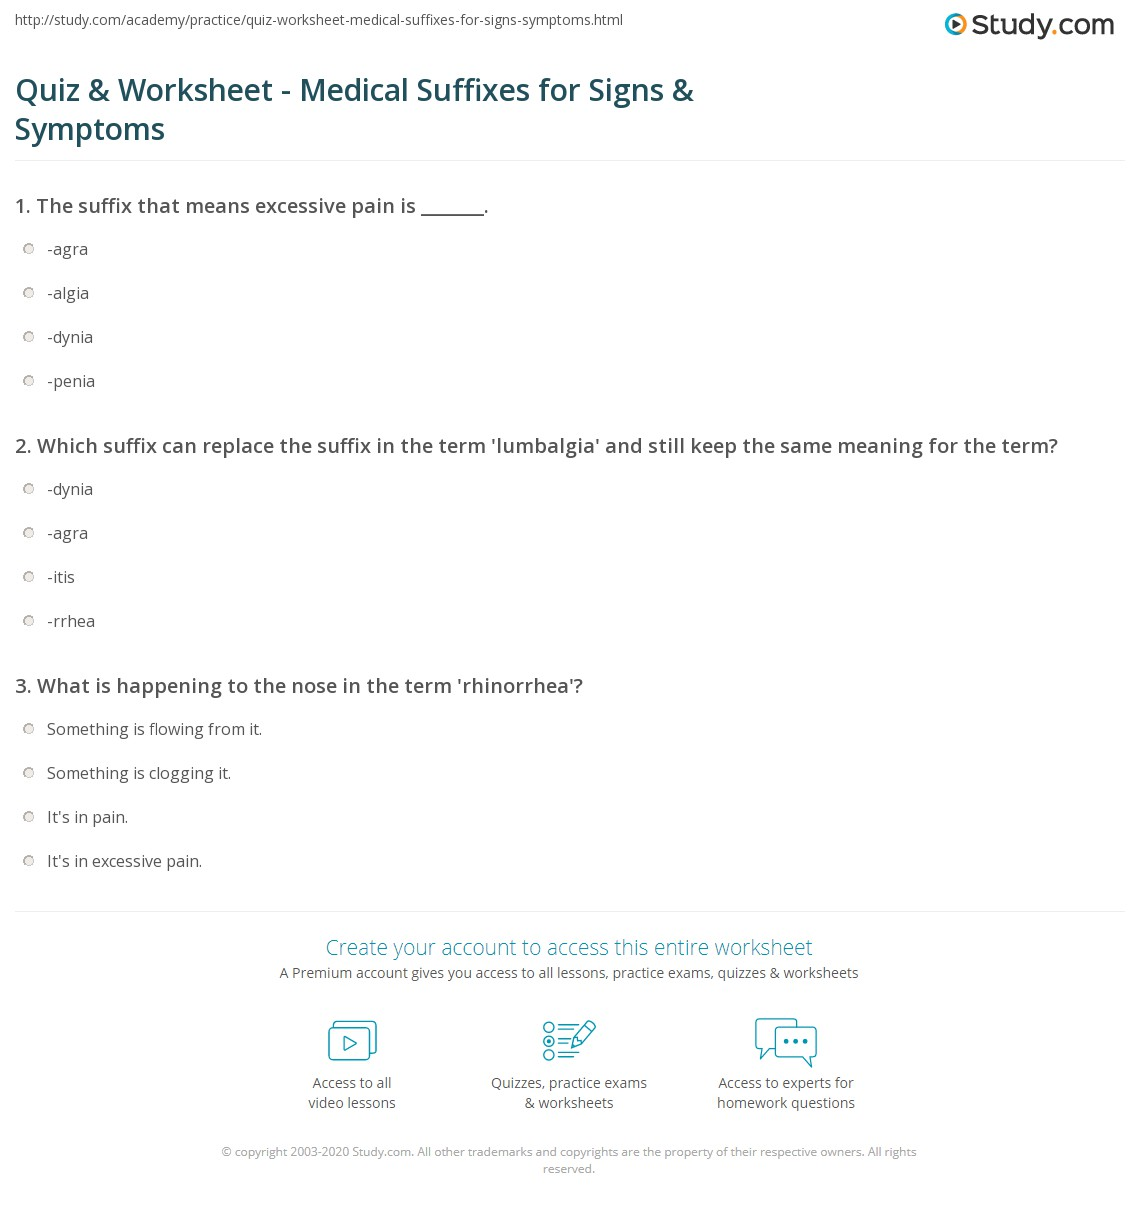 Quiz & Worksheet - Medical Suffixes for Signs & Symptoms | Study.com